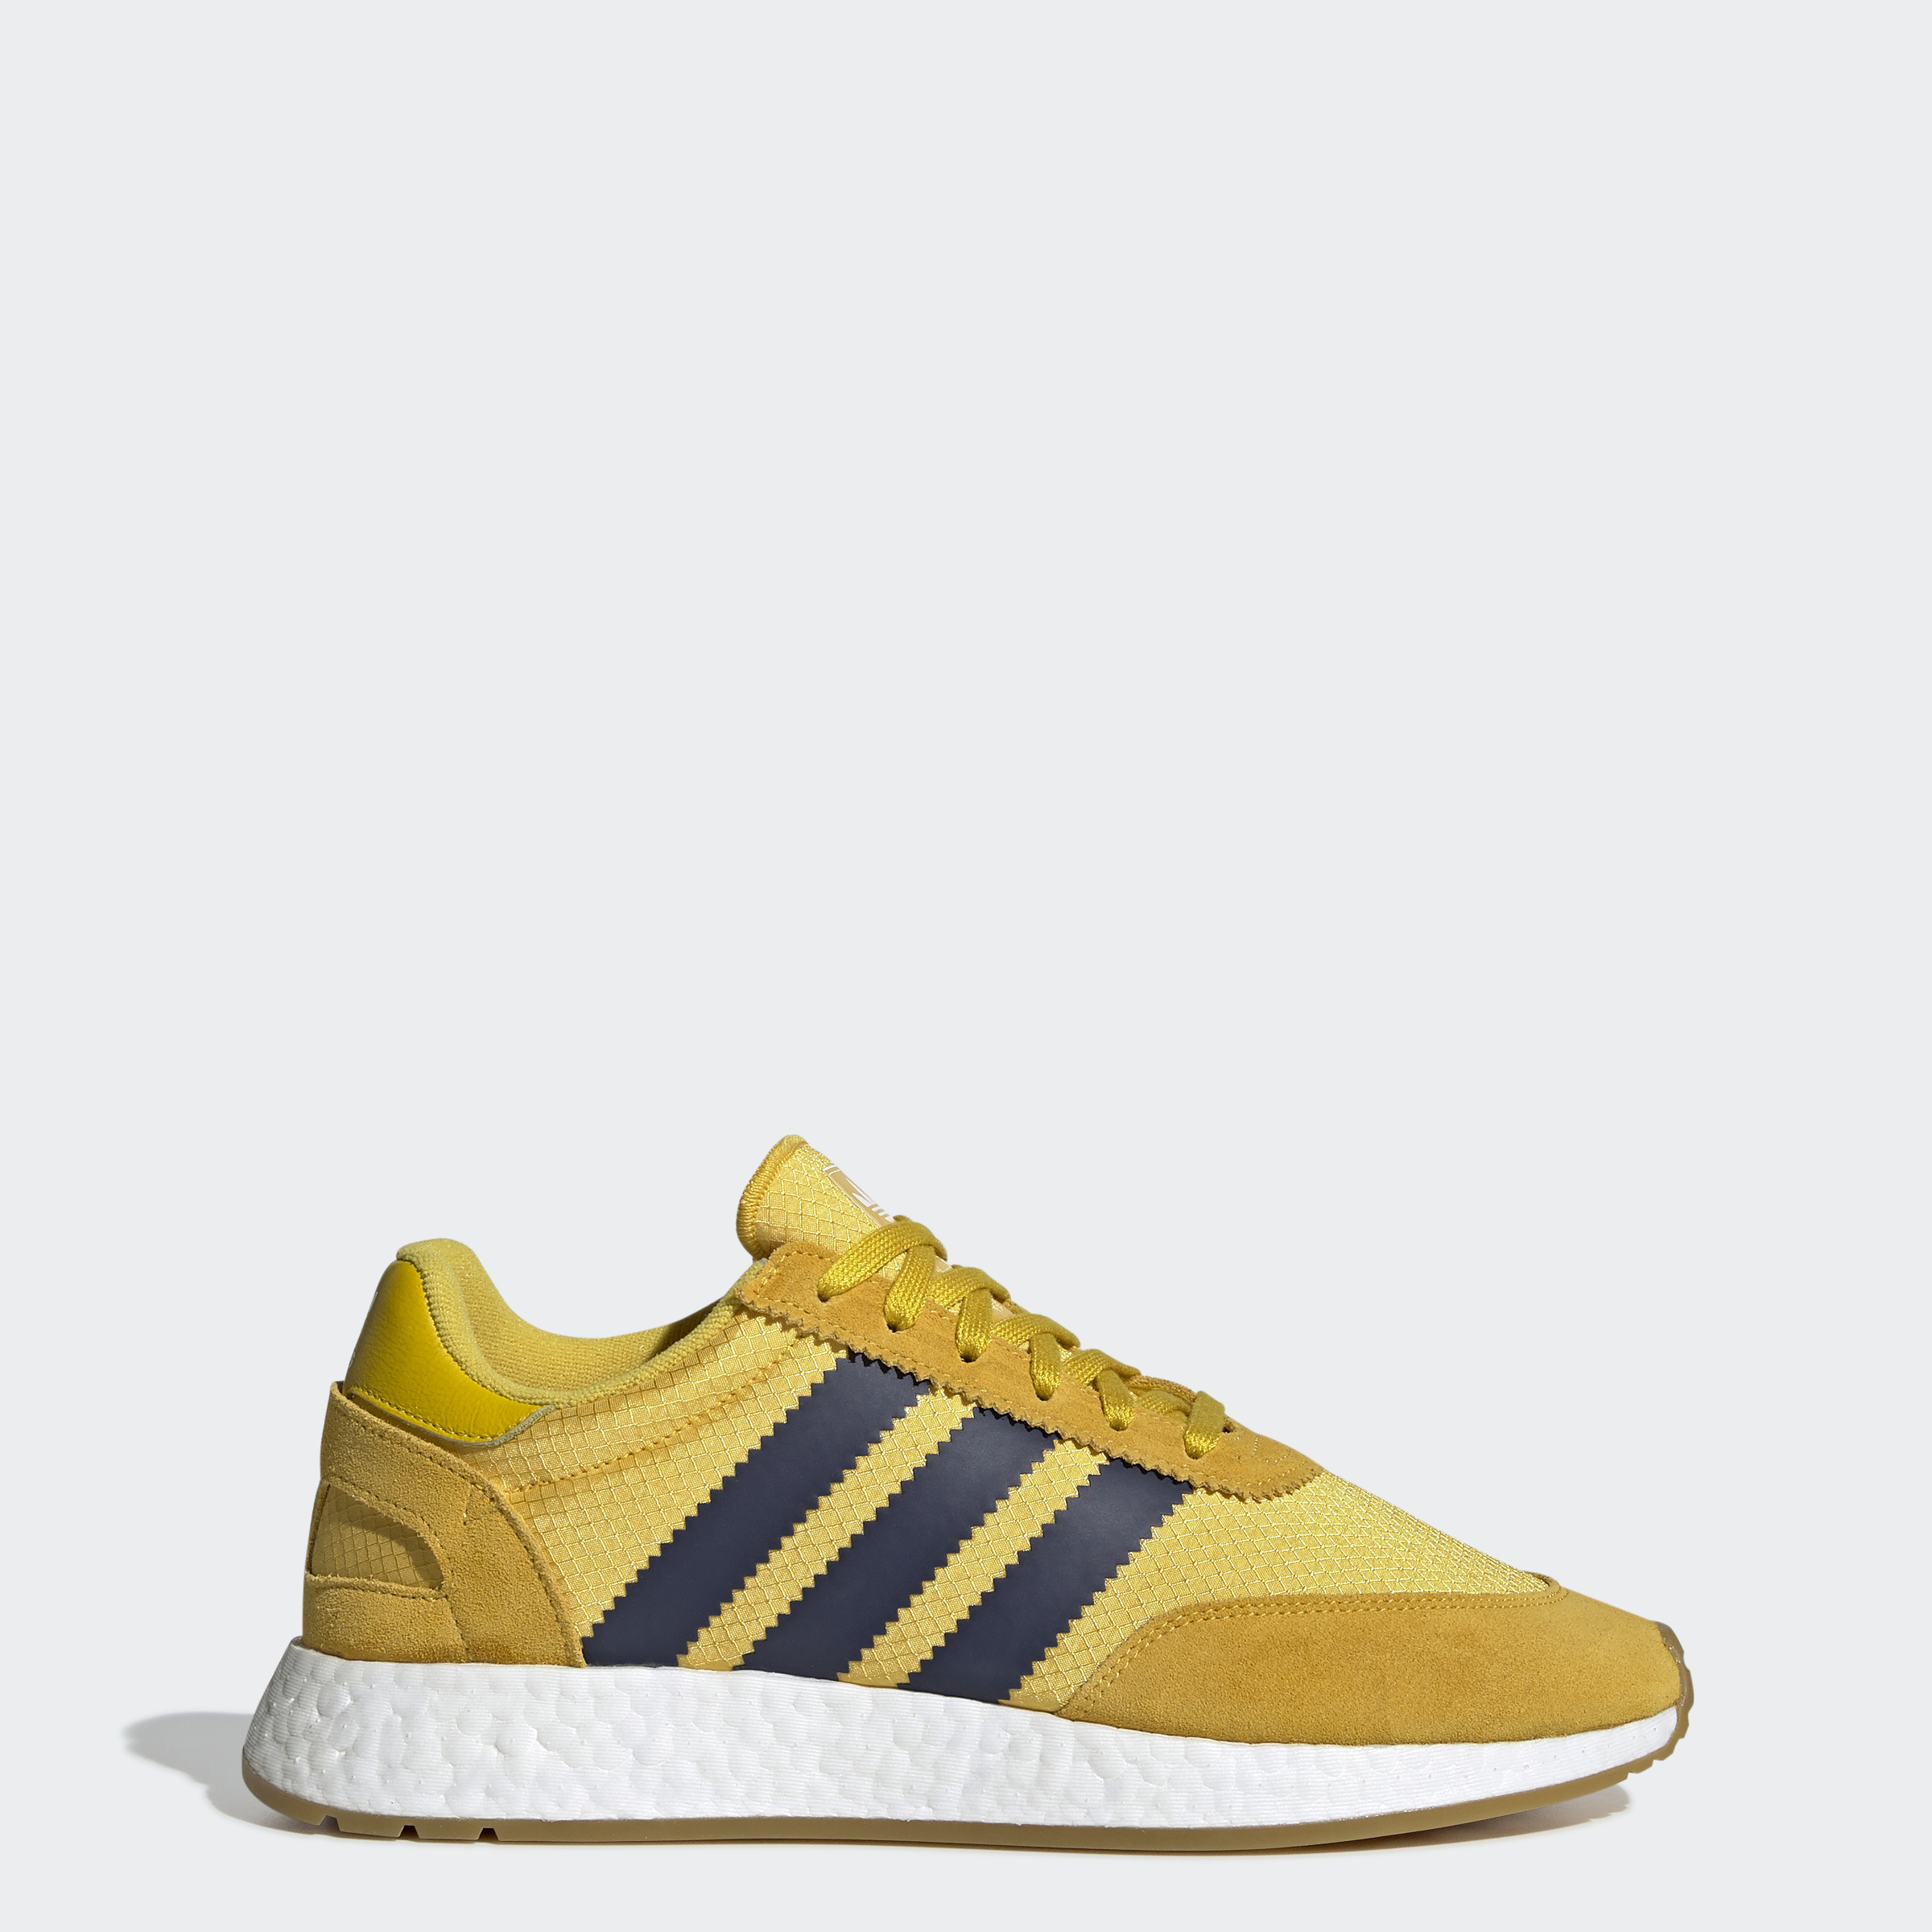 adidas Originals I-5923 Shoes Men's Tribe Yellow / Night Indigo